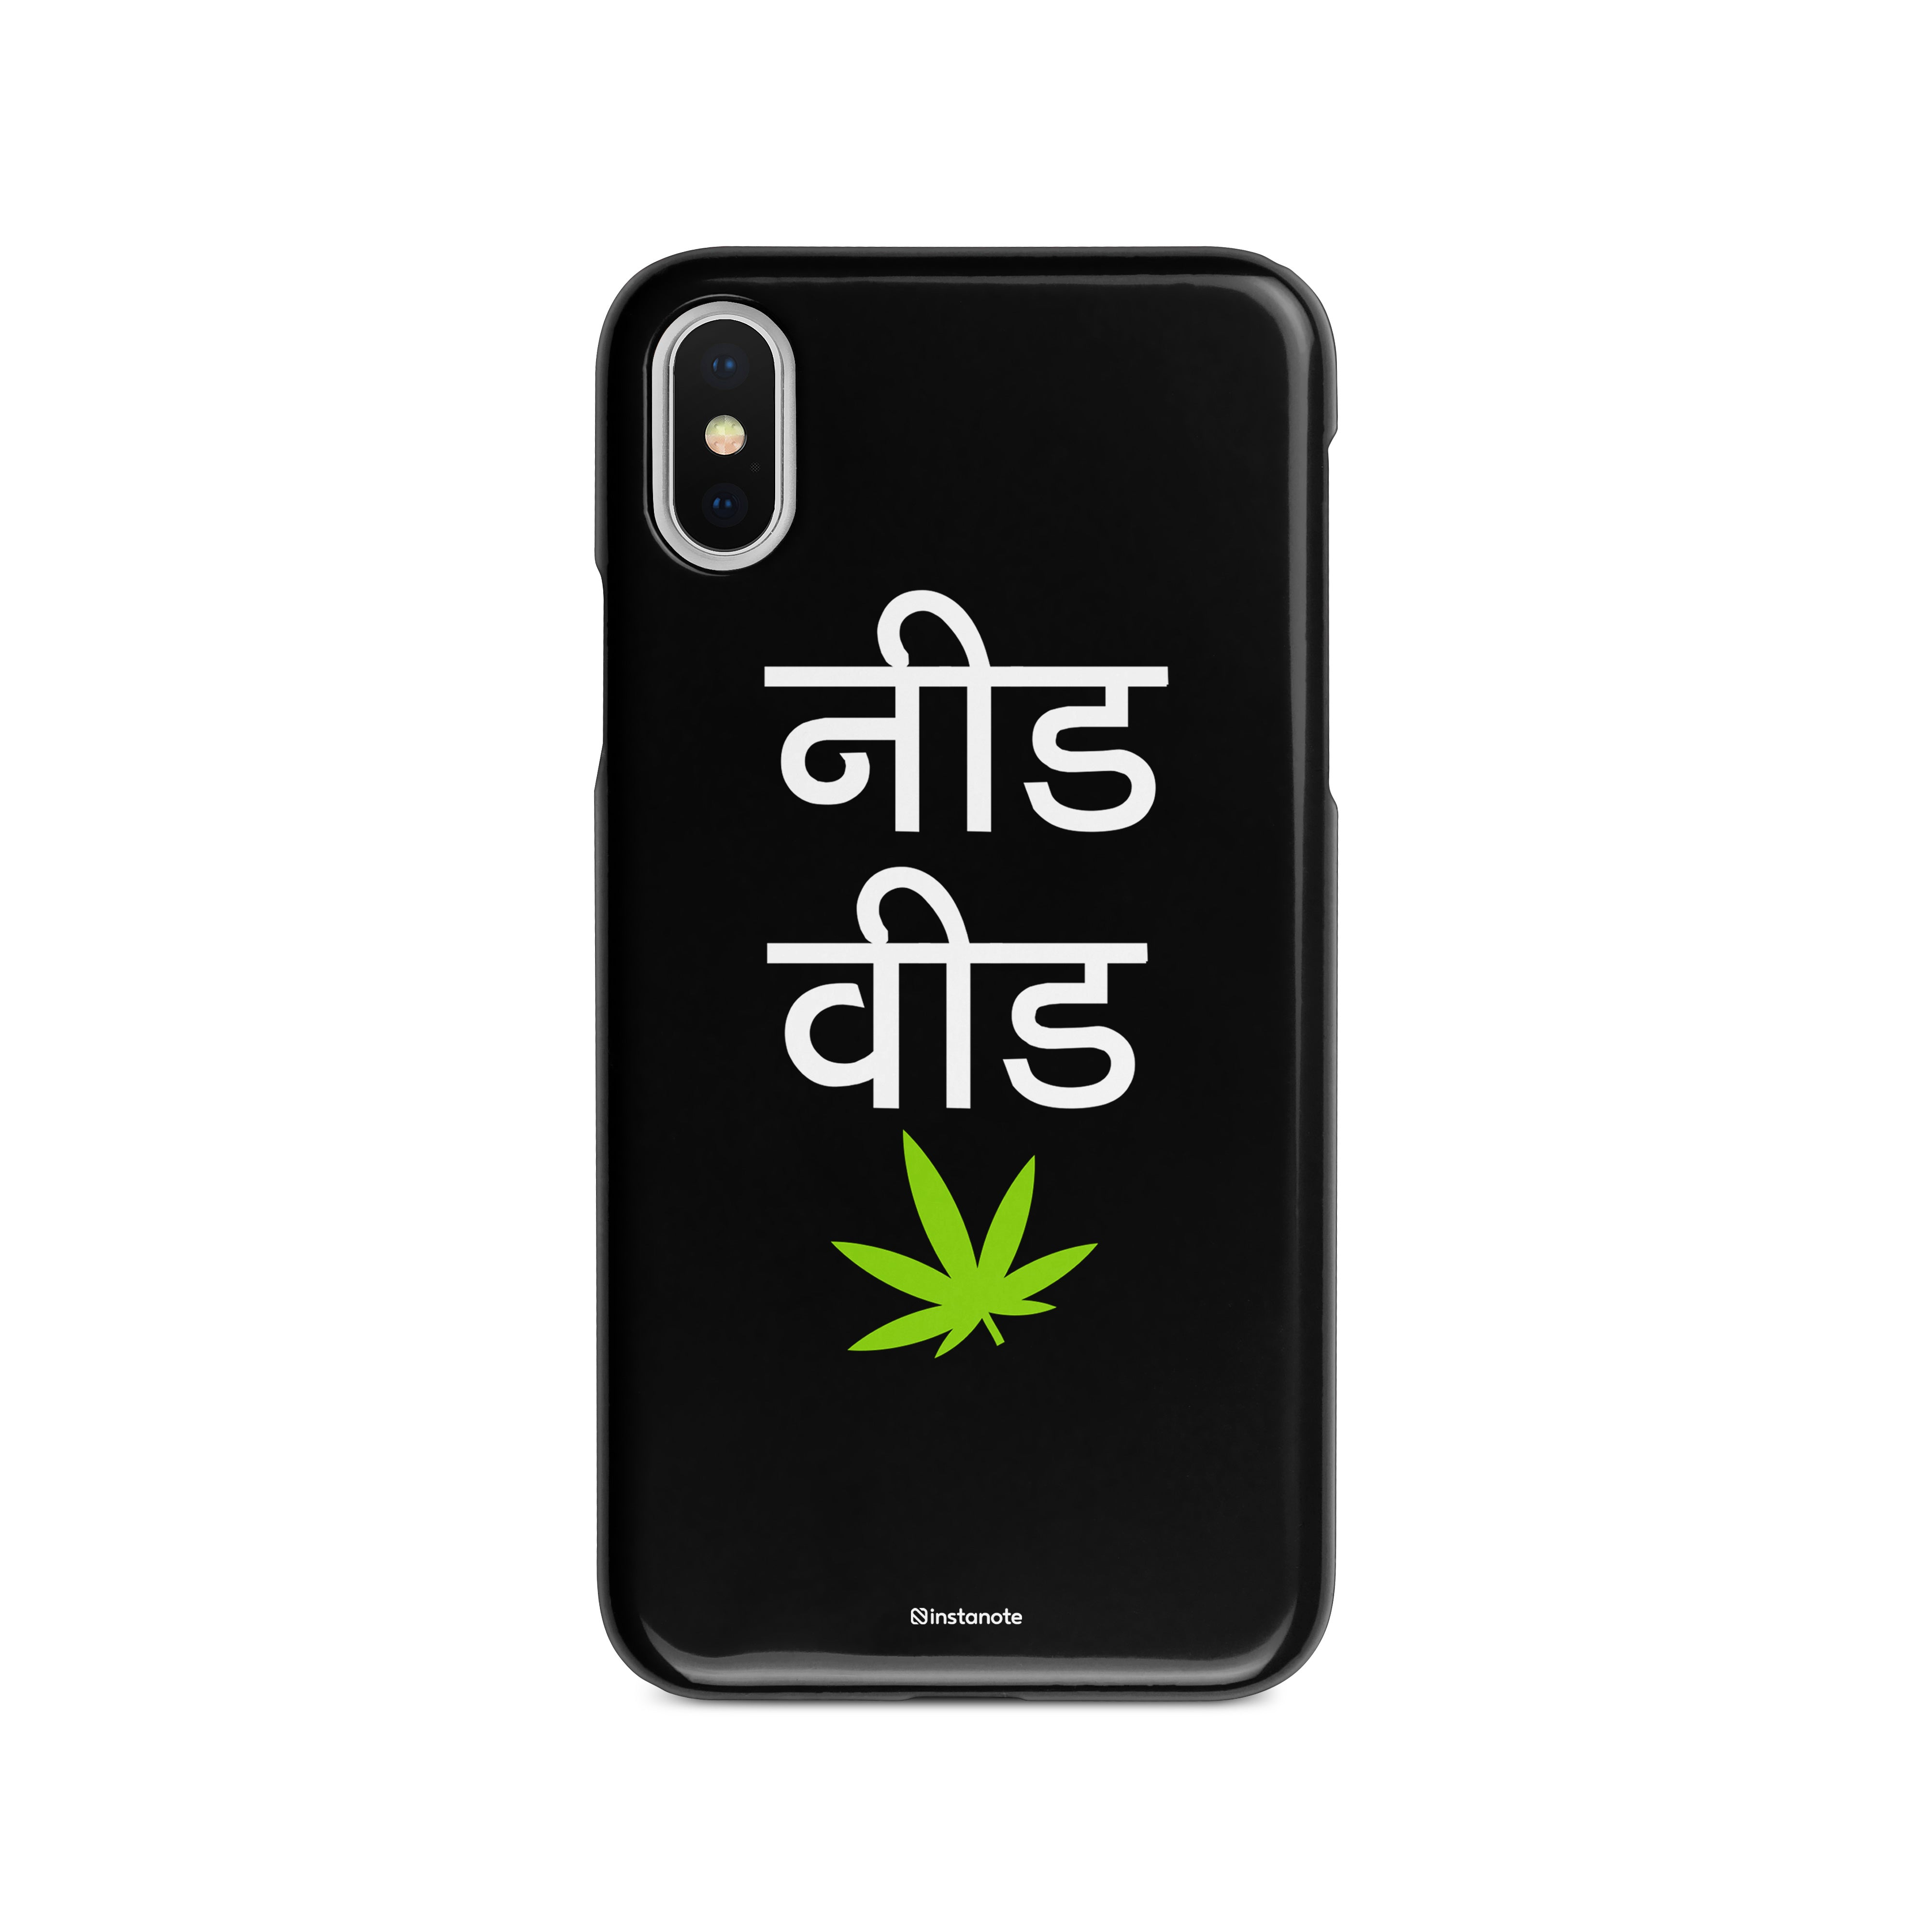 low priced 86558 3722e Need Weed - Buy Quirky iPhoneX Mobile Cover Cases in India - Instanote